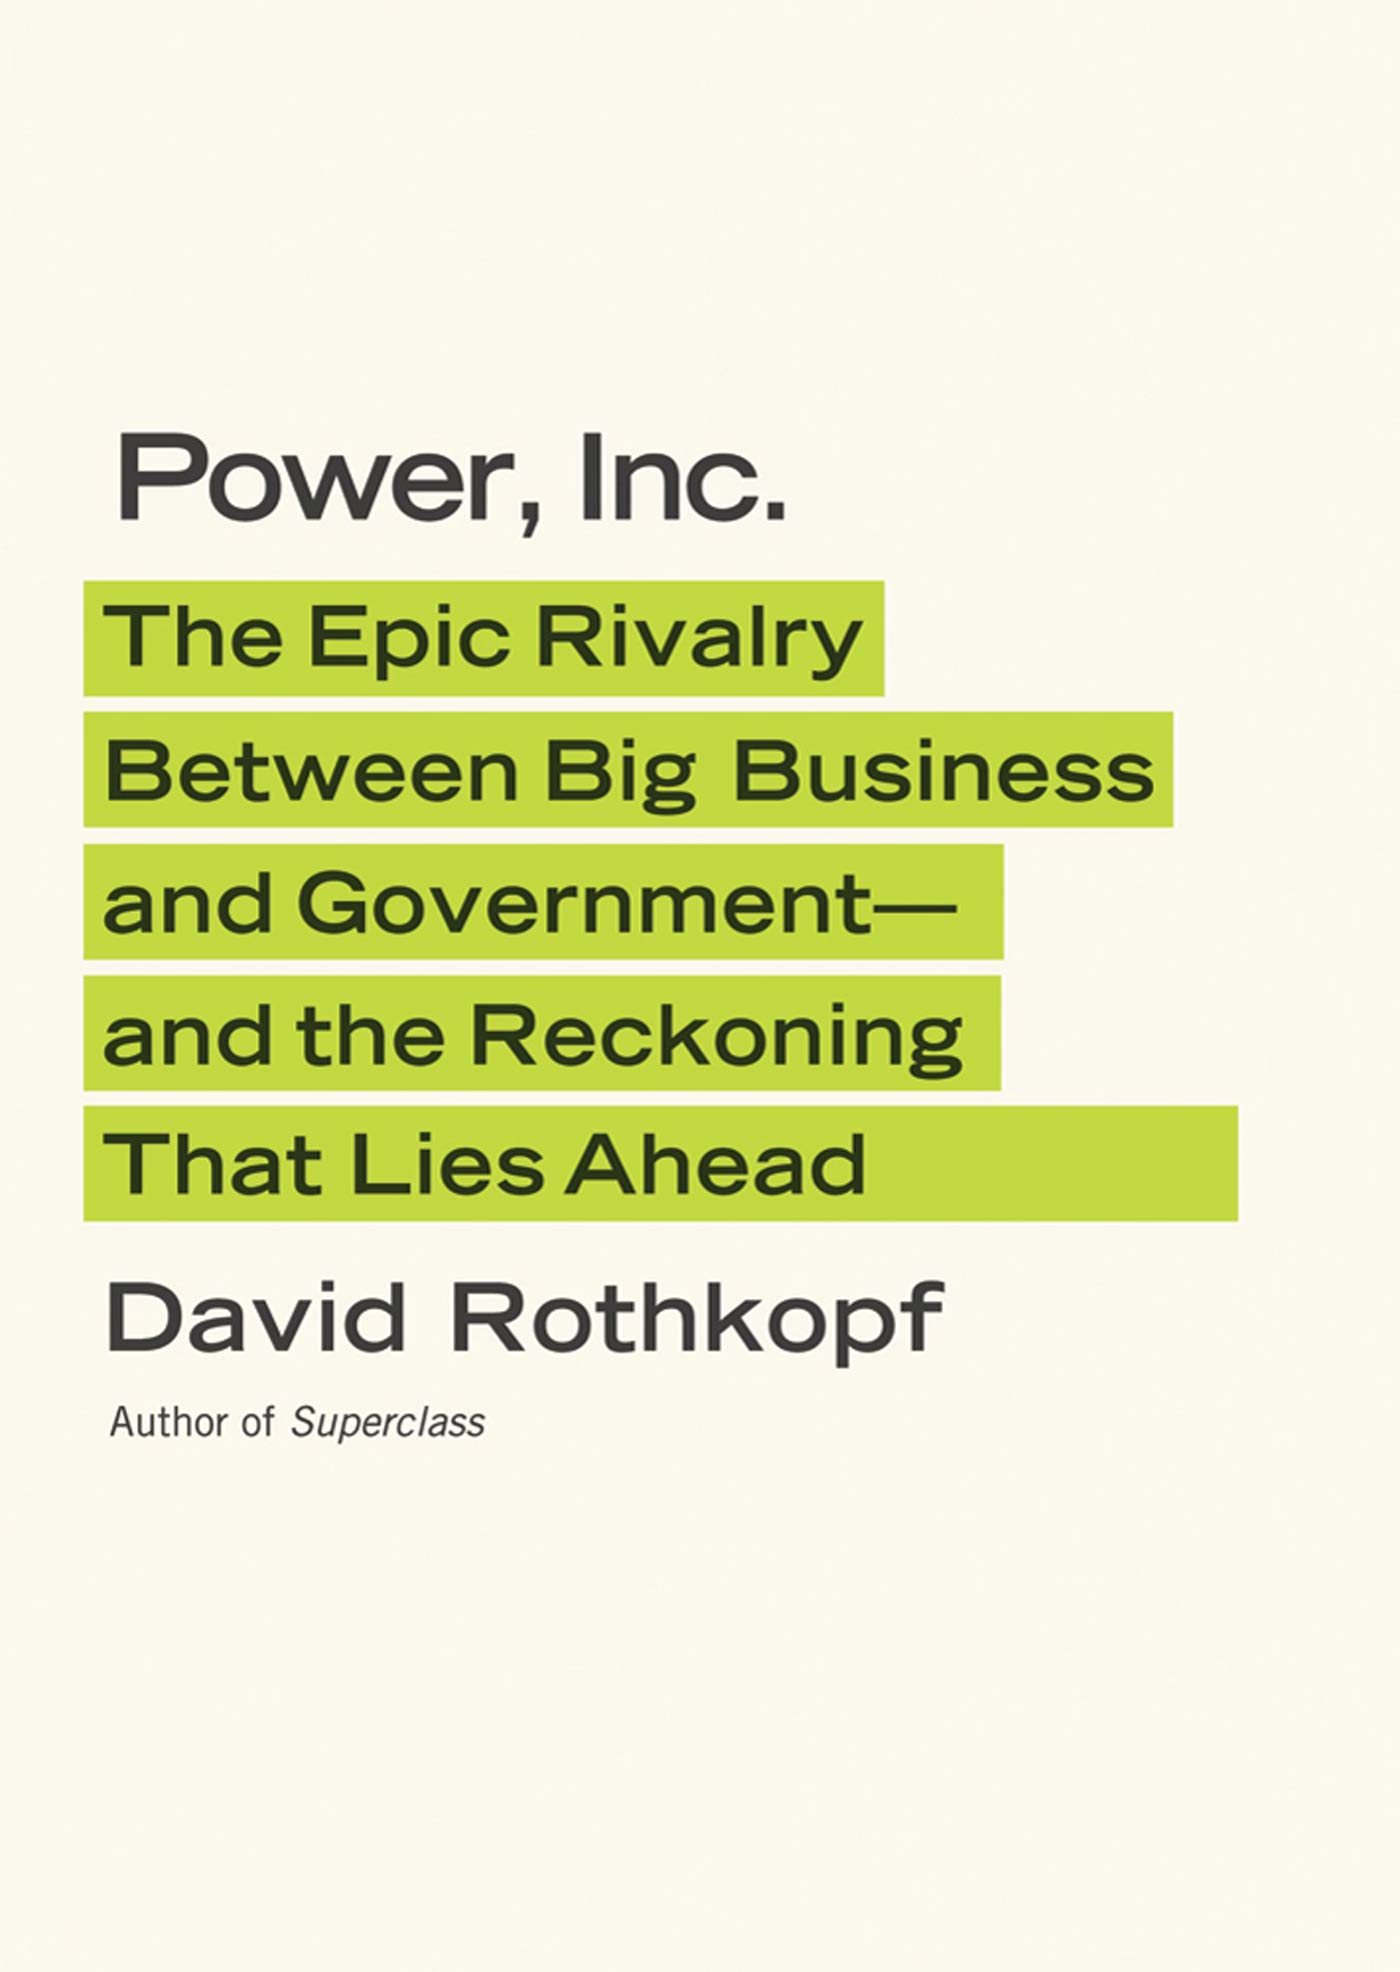 Power, Inc. By: David Rothkopf